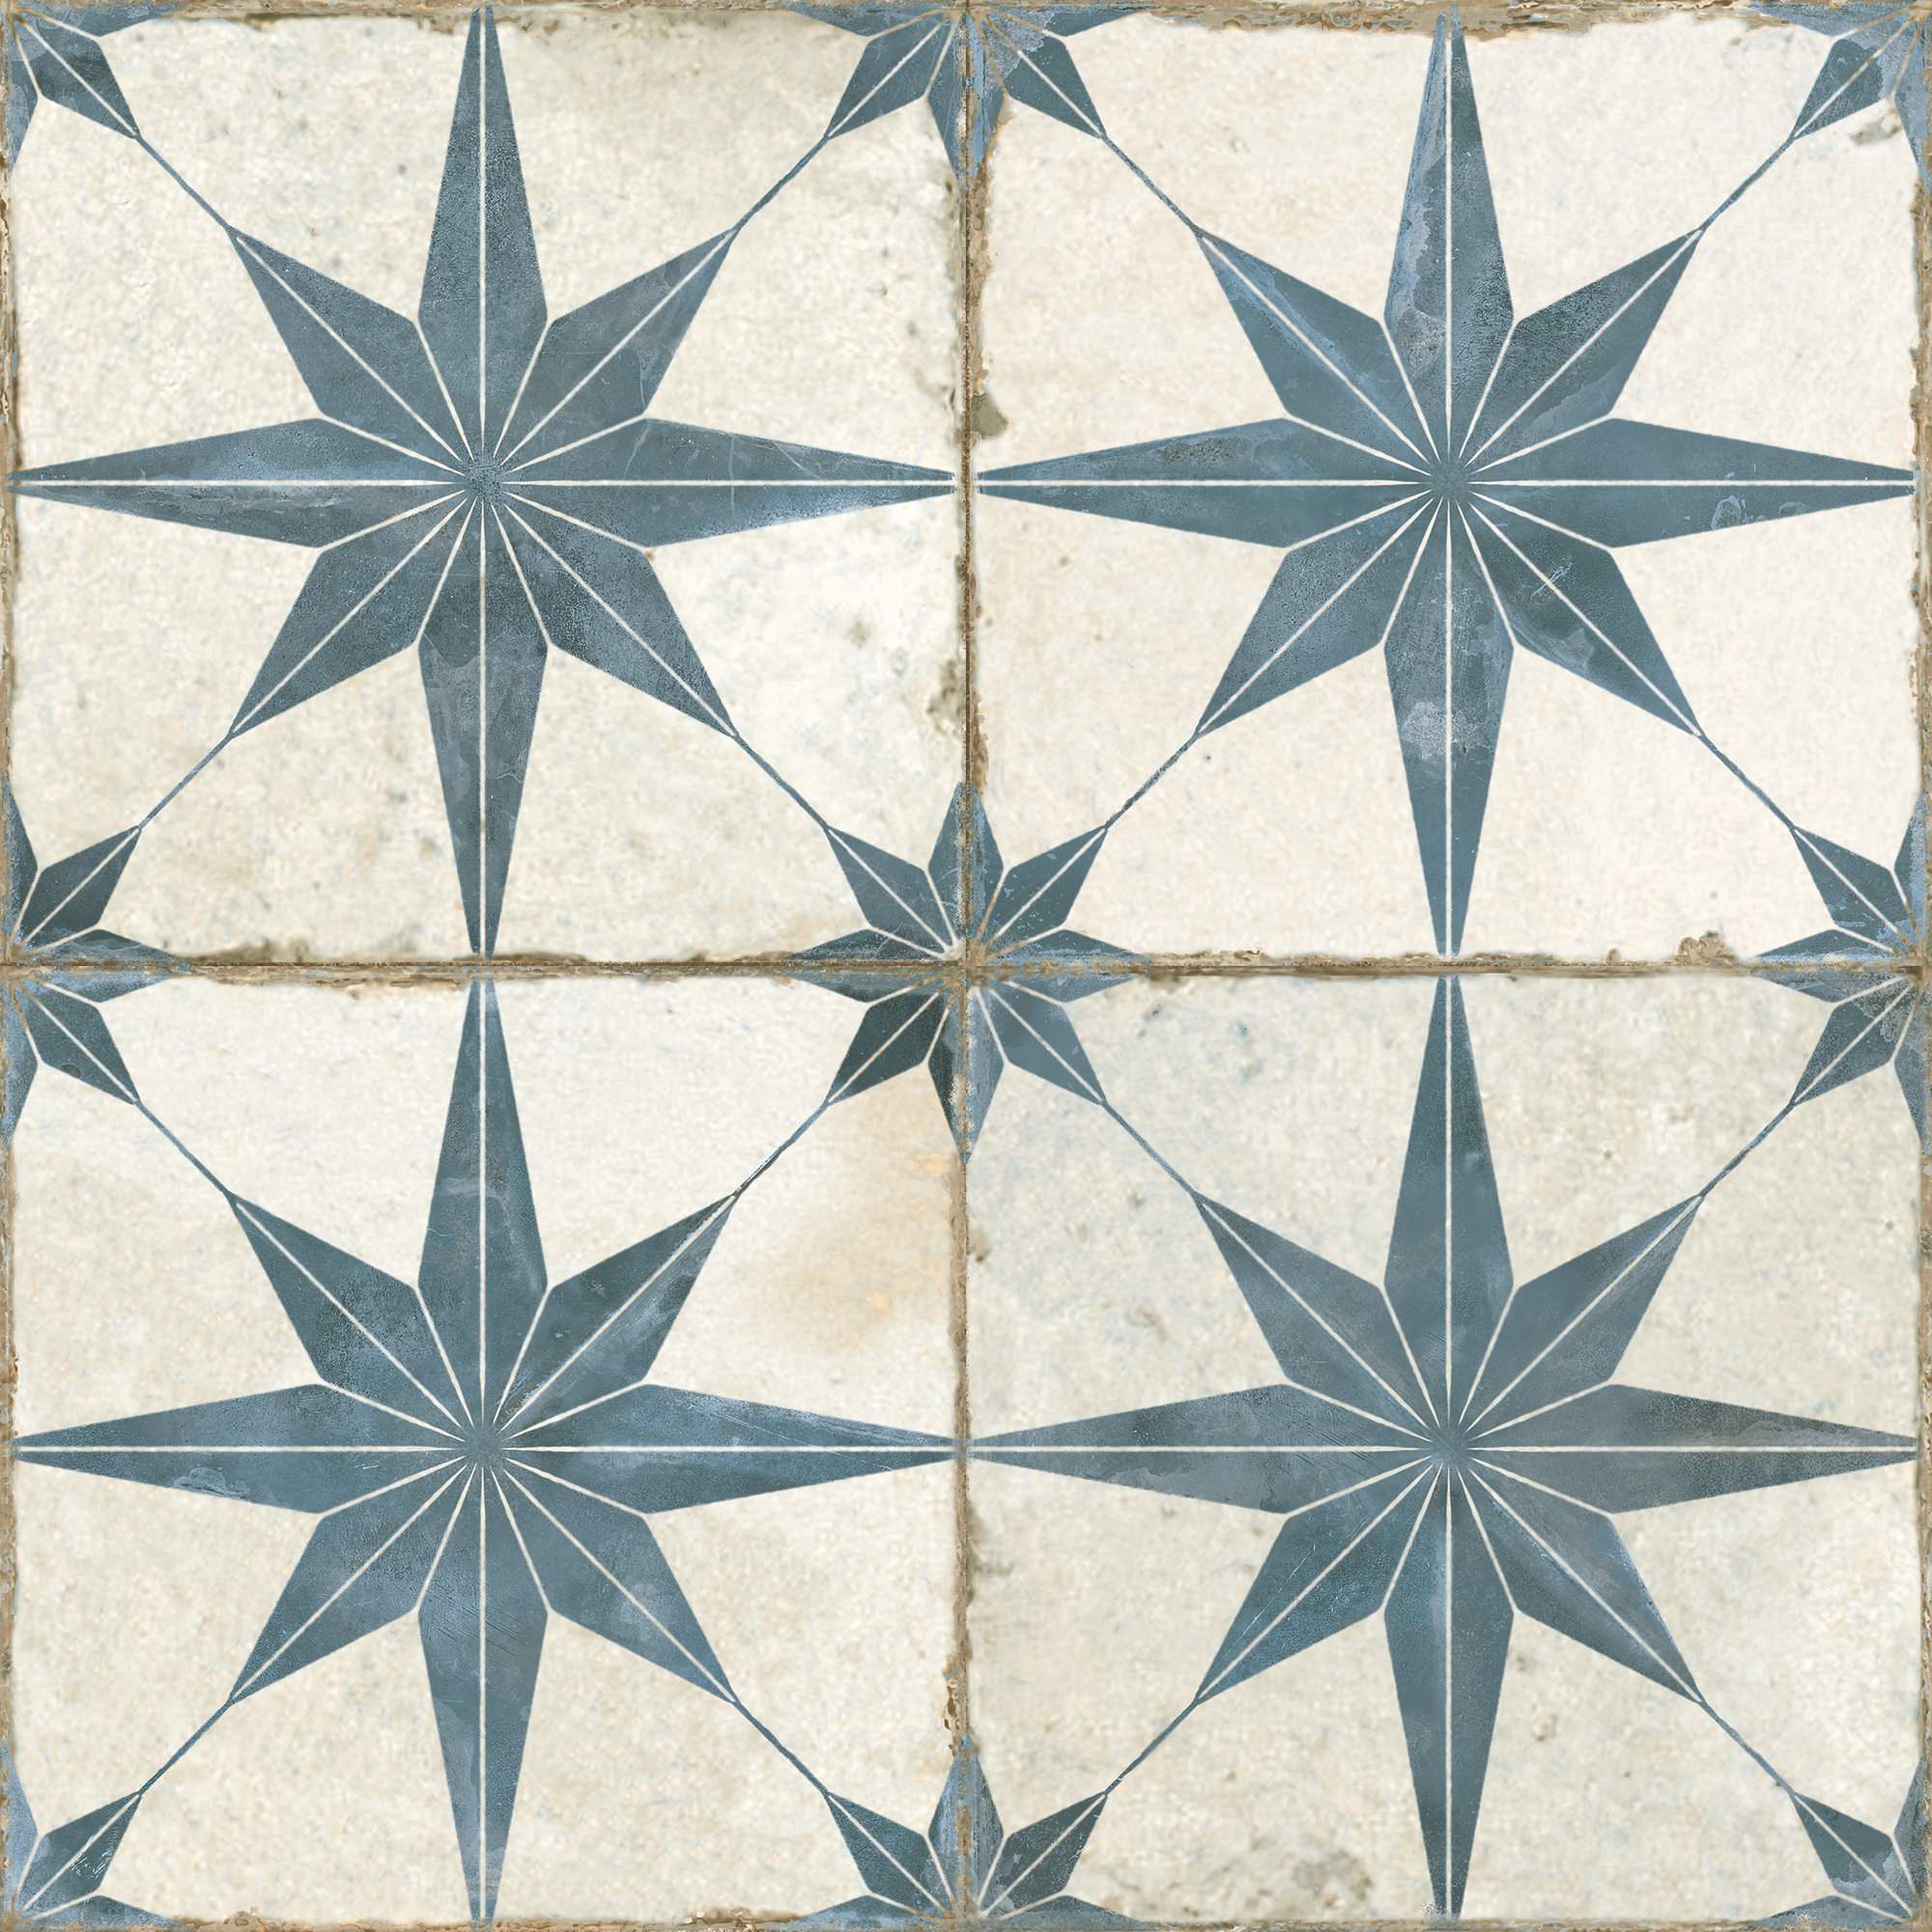 Motif Blue Star Ceramic Tiles Mandarin Stone